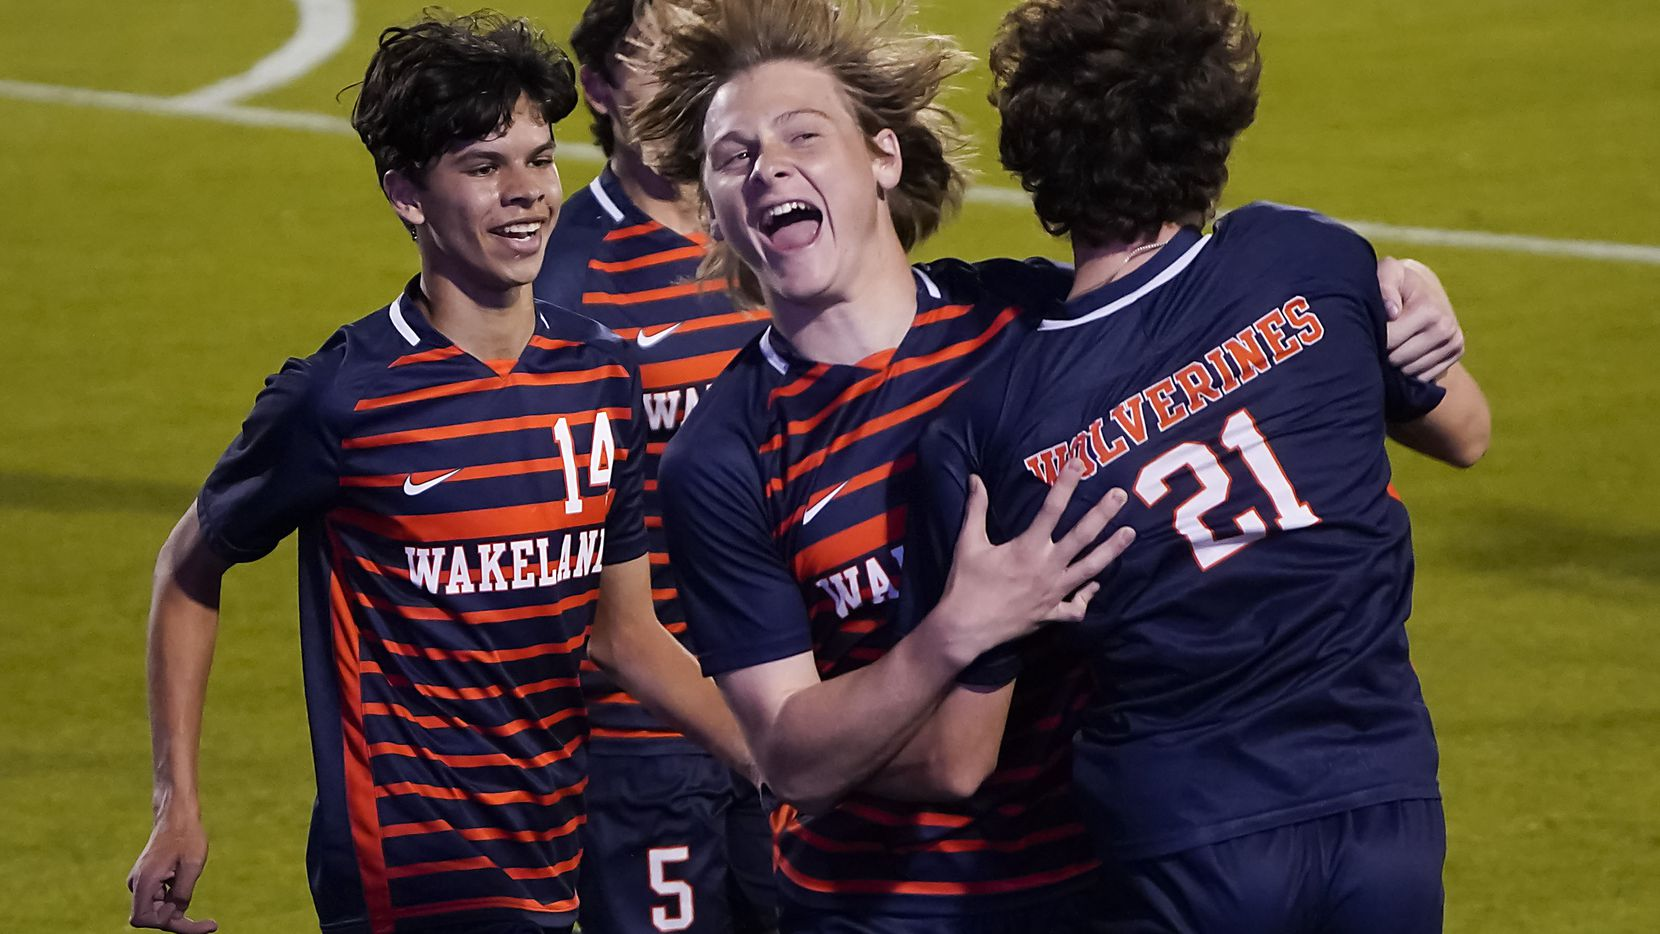 Frisco Wakeland's Jimmy Suerth (21) celebrates with Peyton Atchley (15) after scoring a goal during the first half of a victory over Adamson in a Class 5A boys soccer area-round playoff game at Toyota Stadium on Tuesday, March 30, 2021, in Frisco.